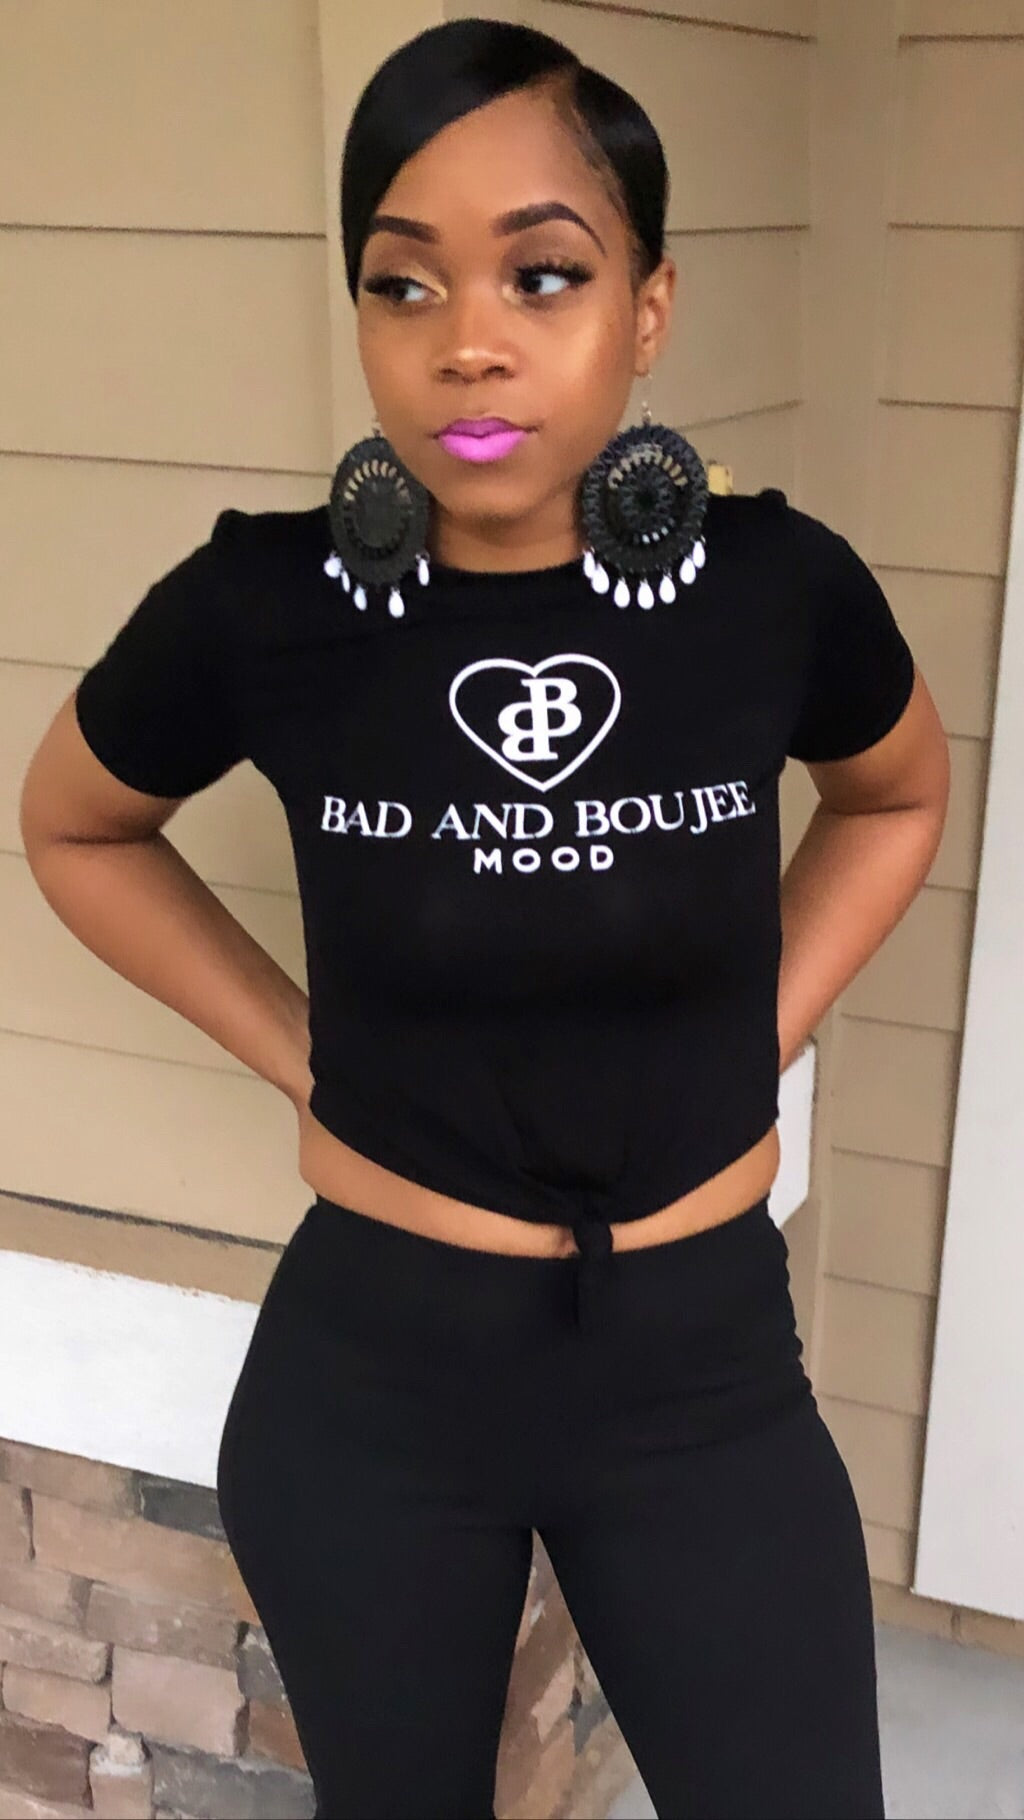 Bad and Boujee' Top